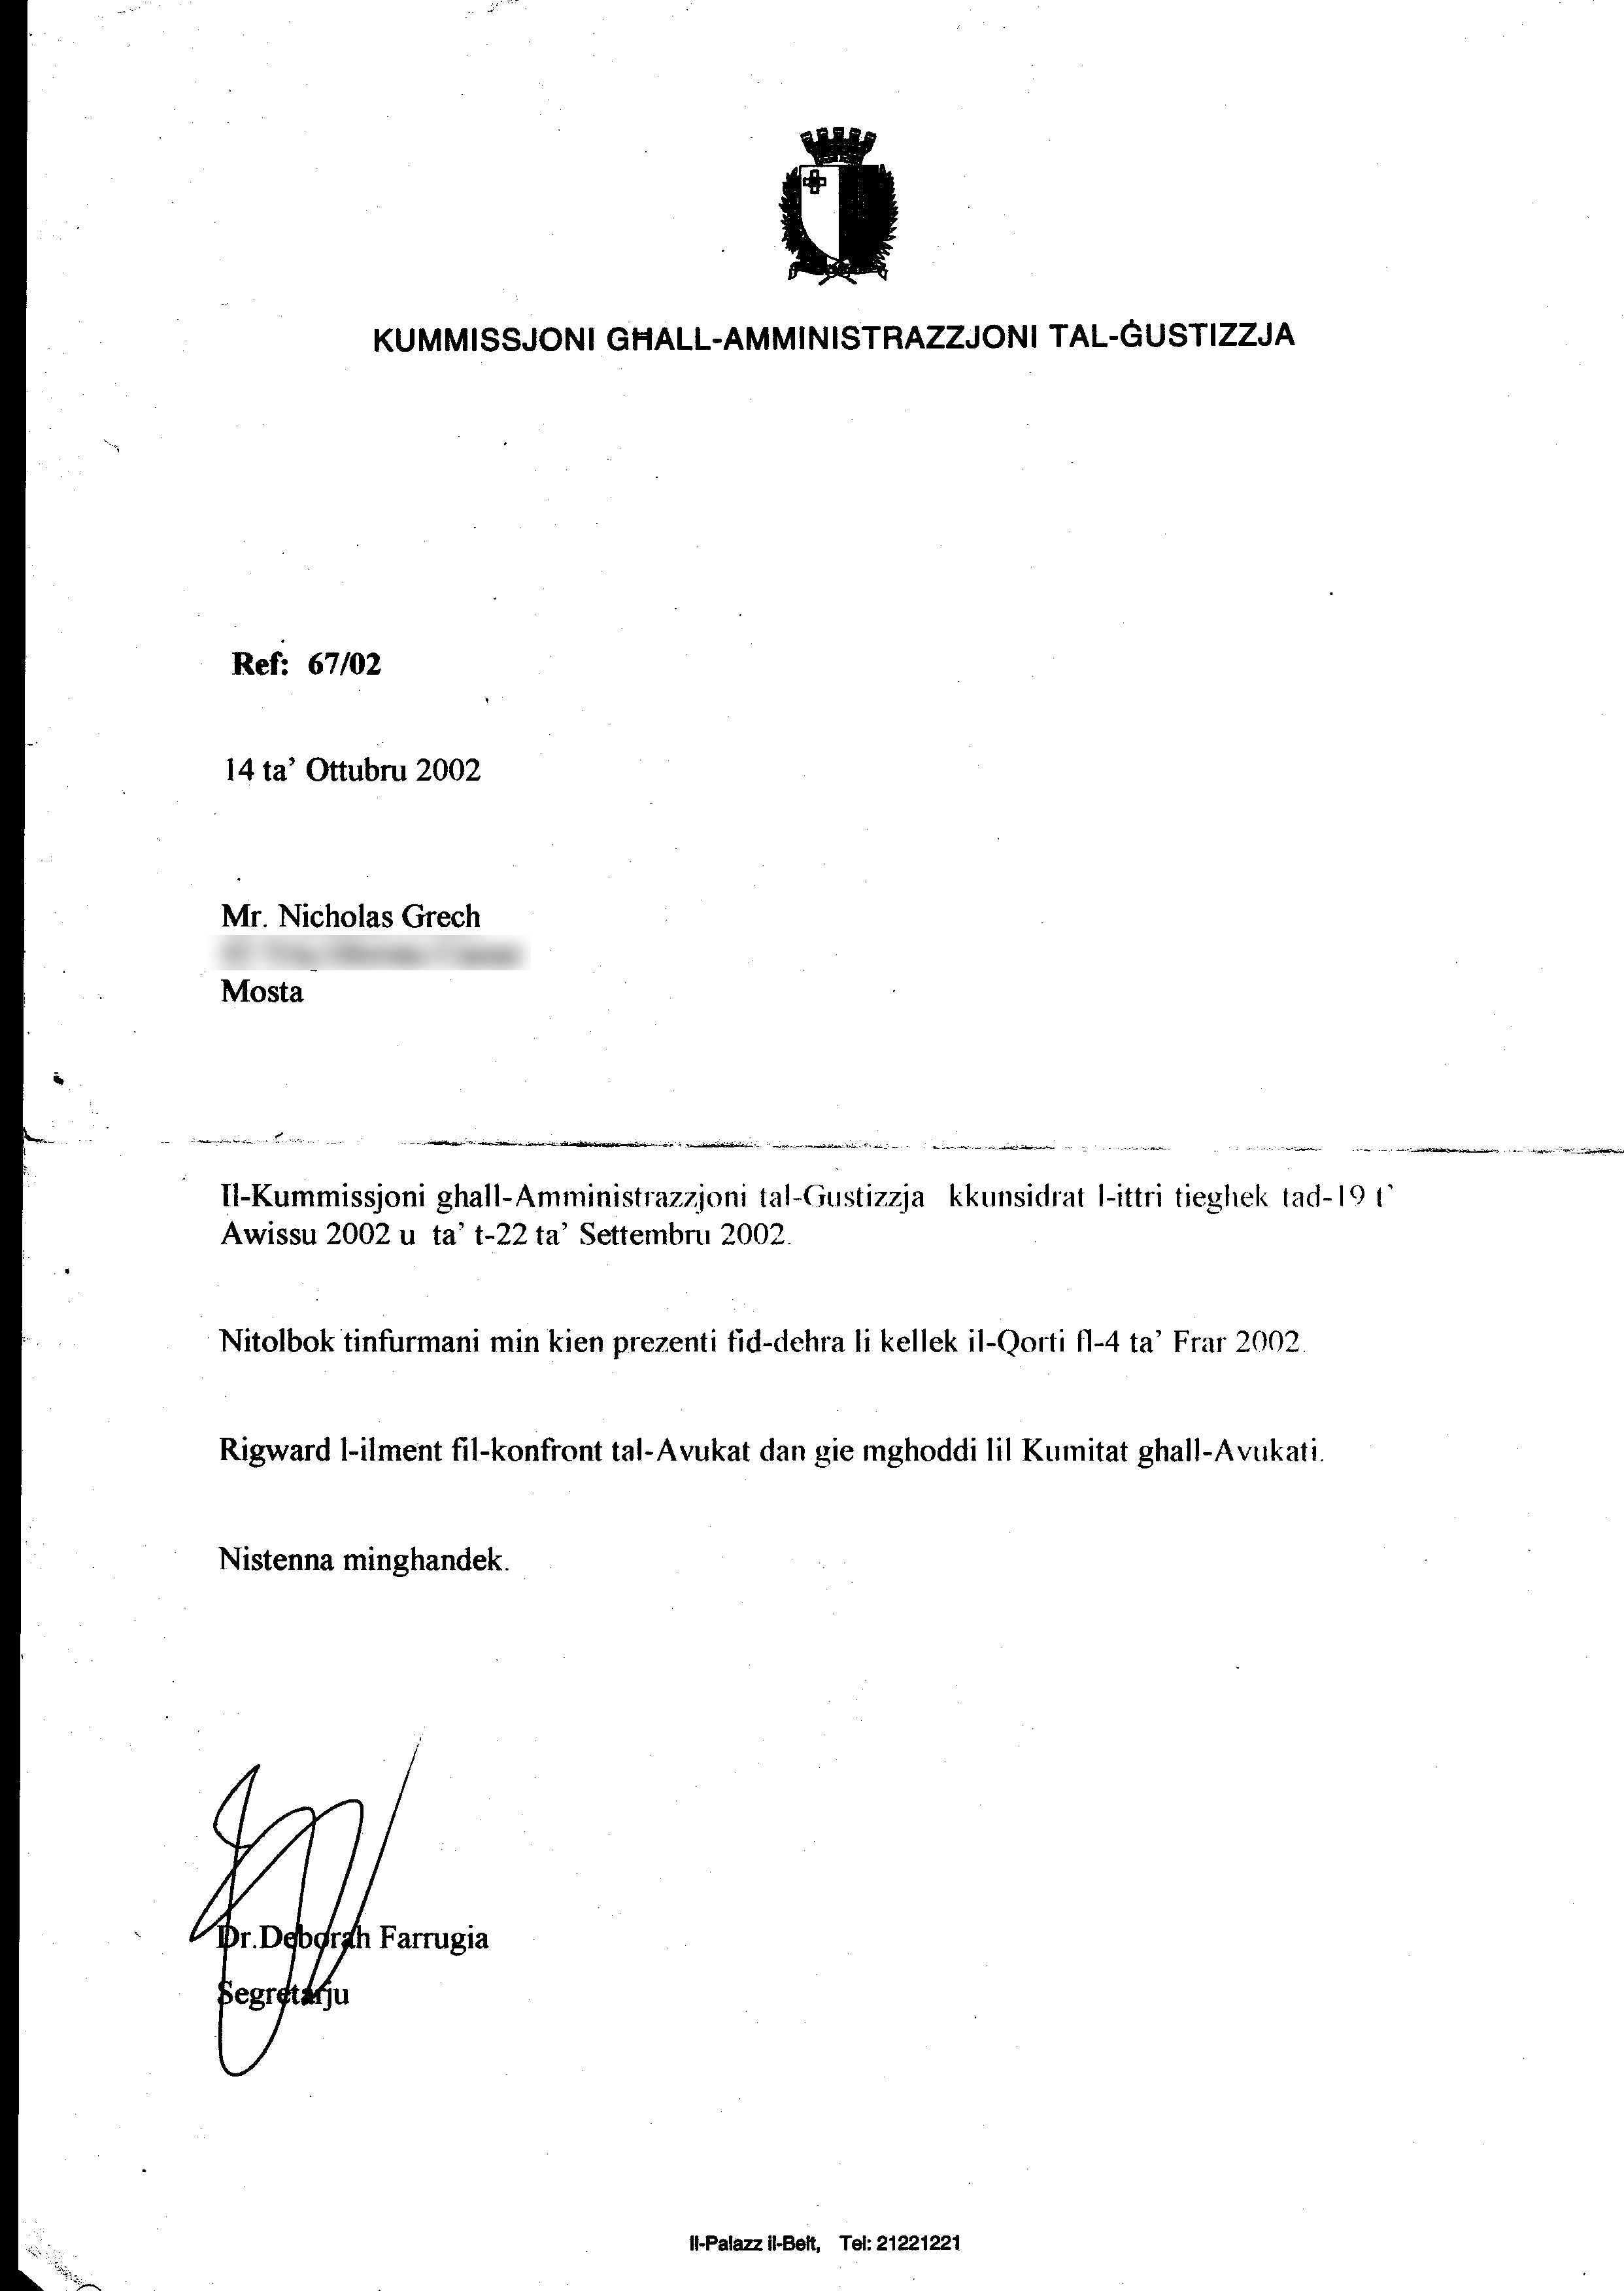 Letter from the Commission for the Administration of Justice dated 14th October 2002 asking for those who witnessed the incidents on 4-Feb-20